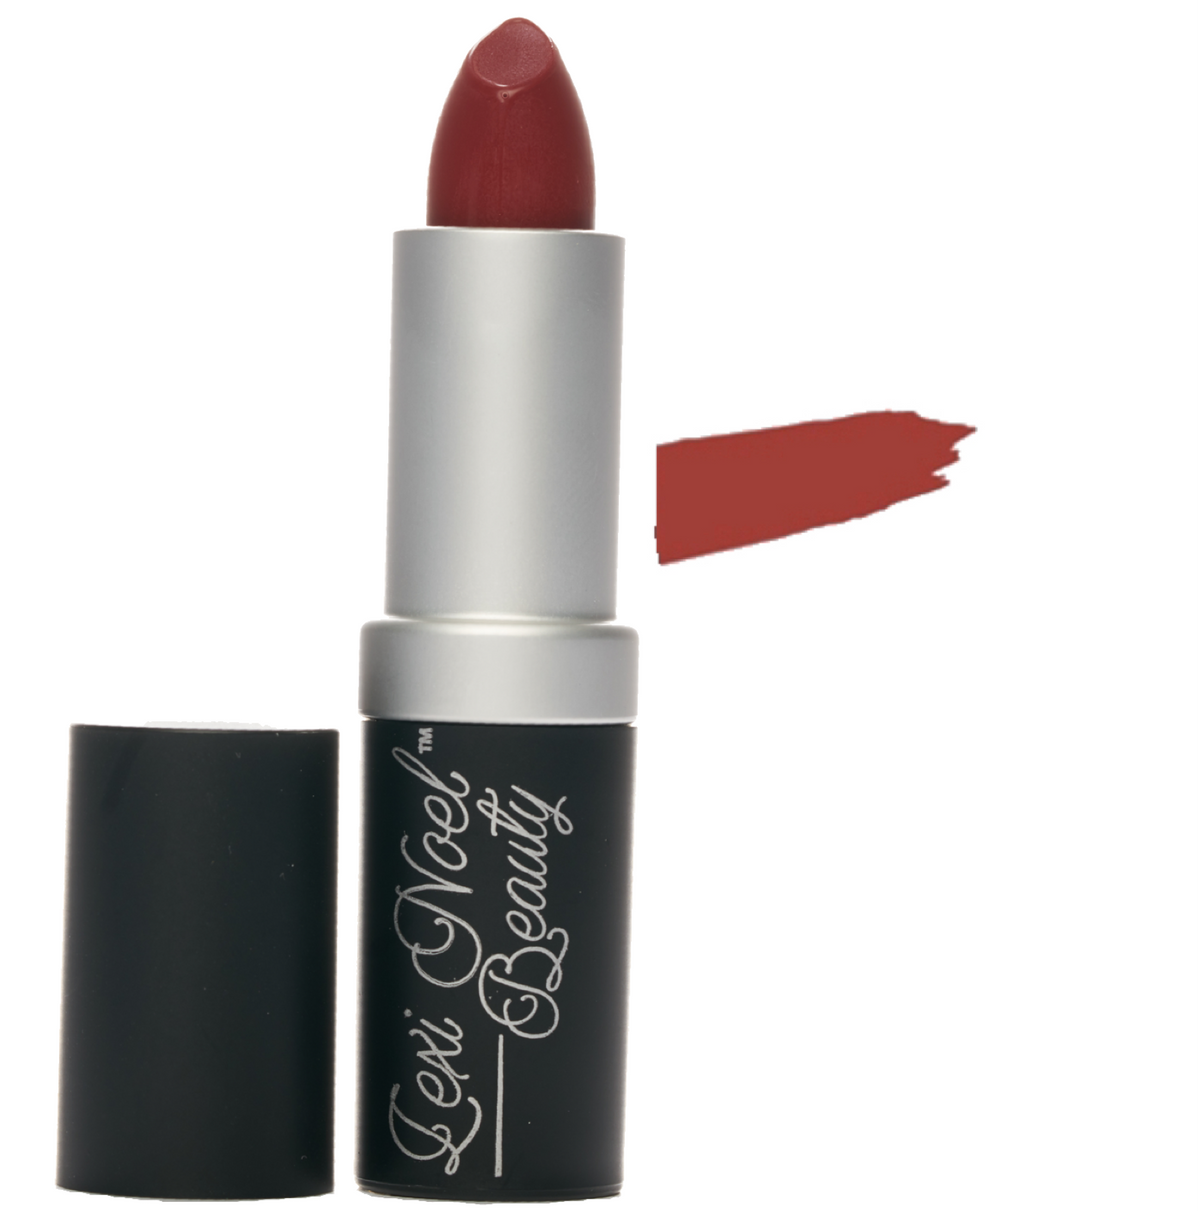 True Love Lipstick Color - lexinoelbeauty.com